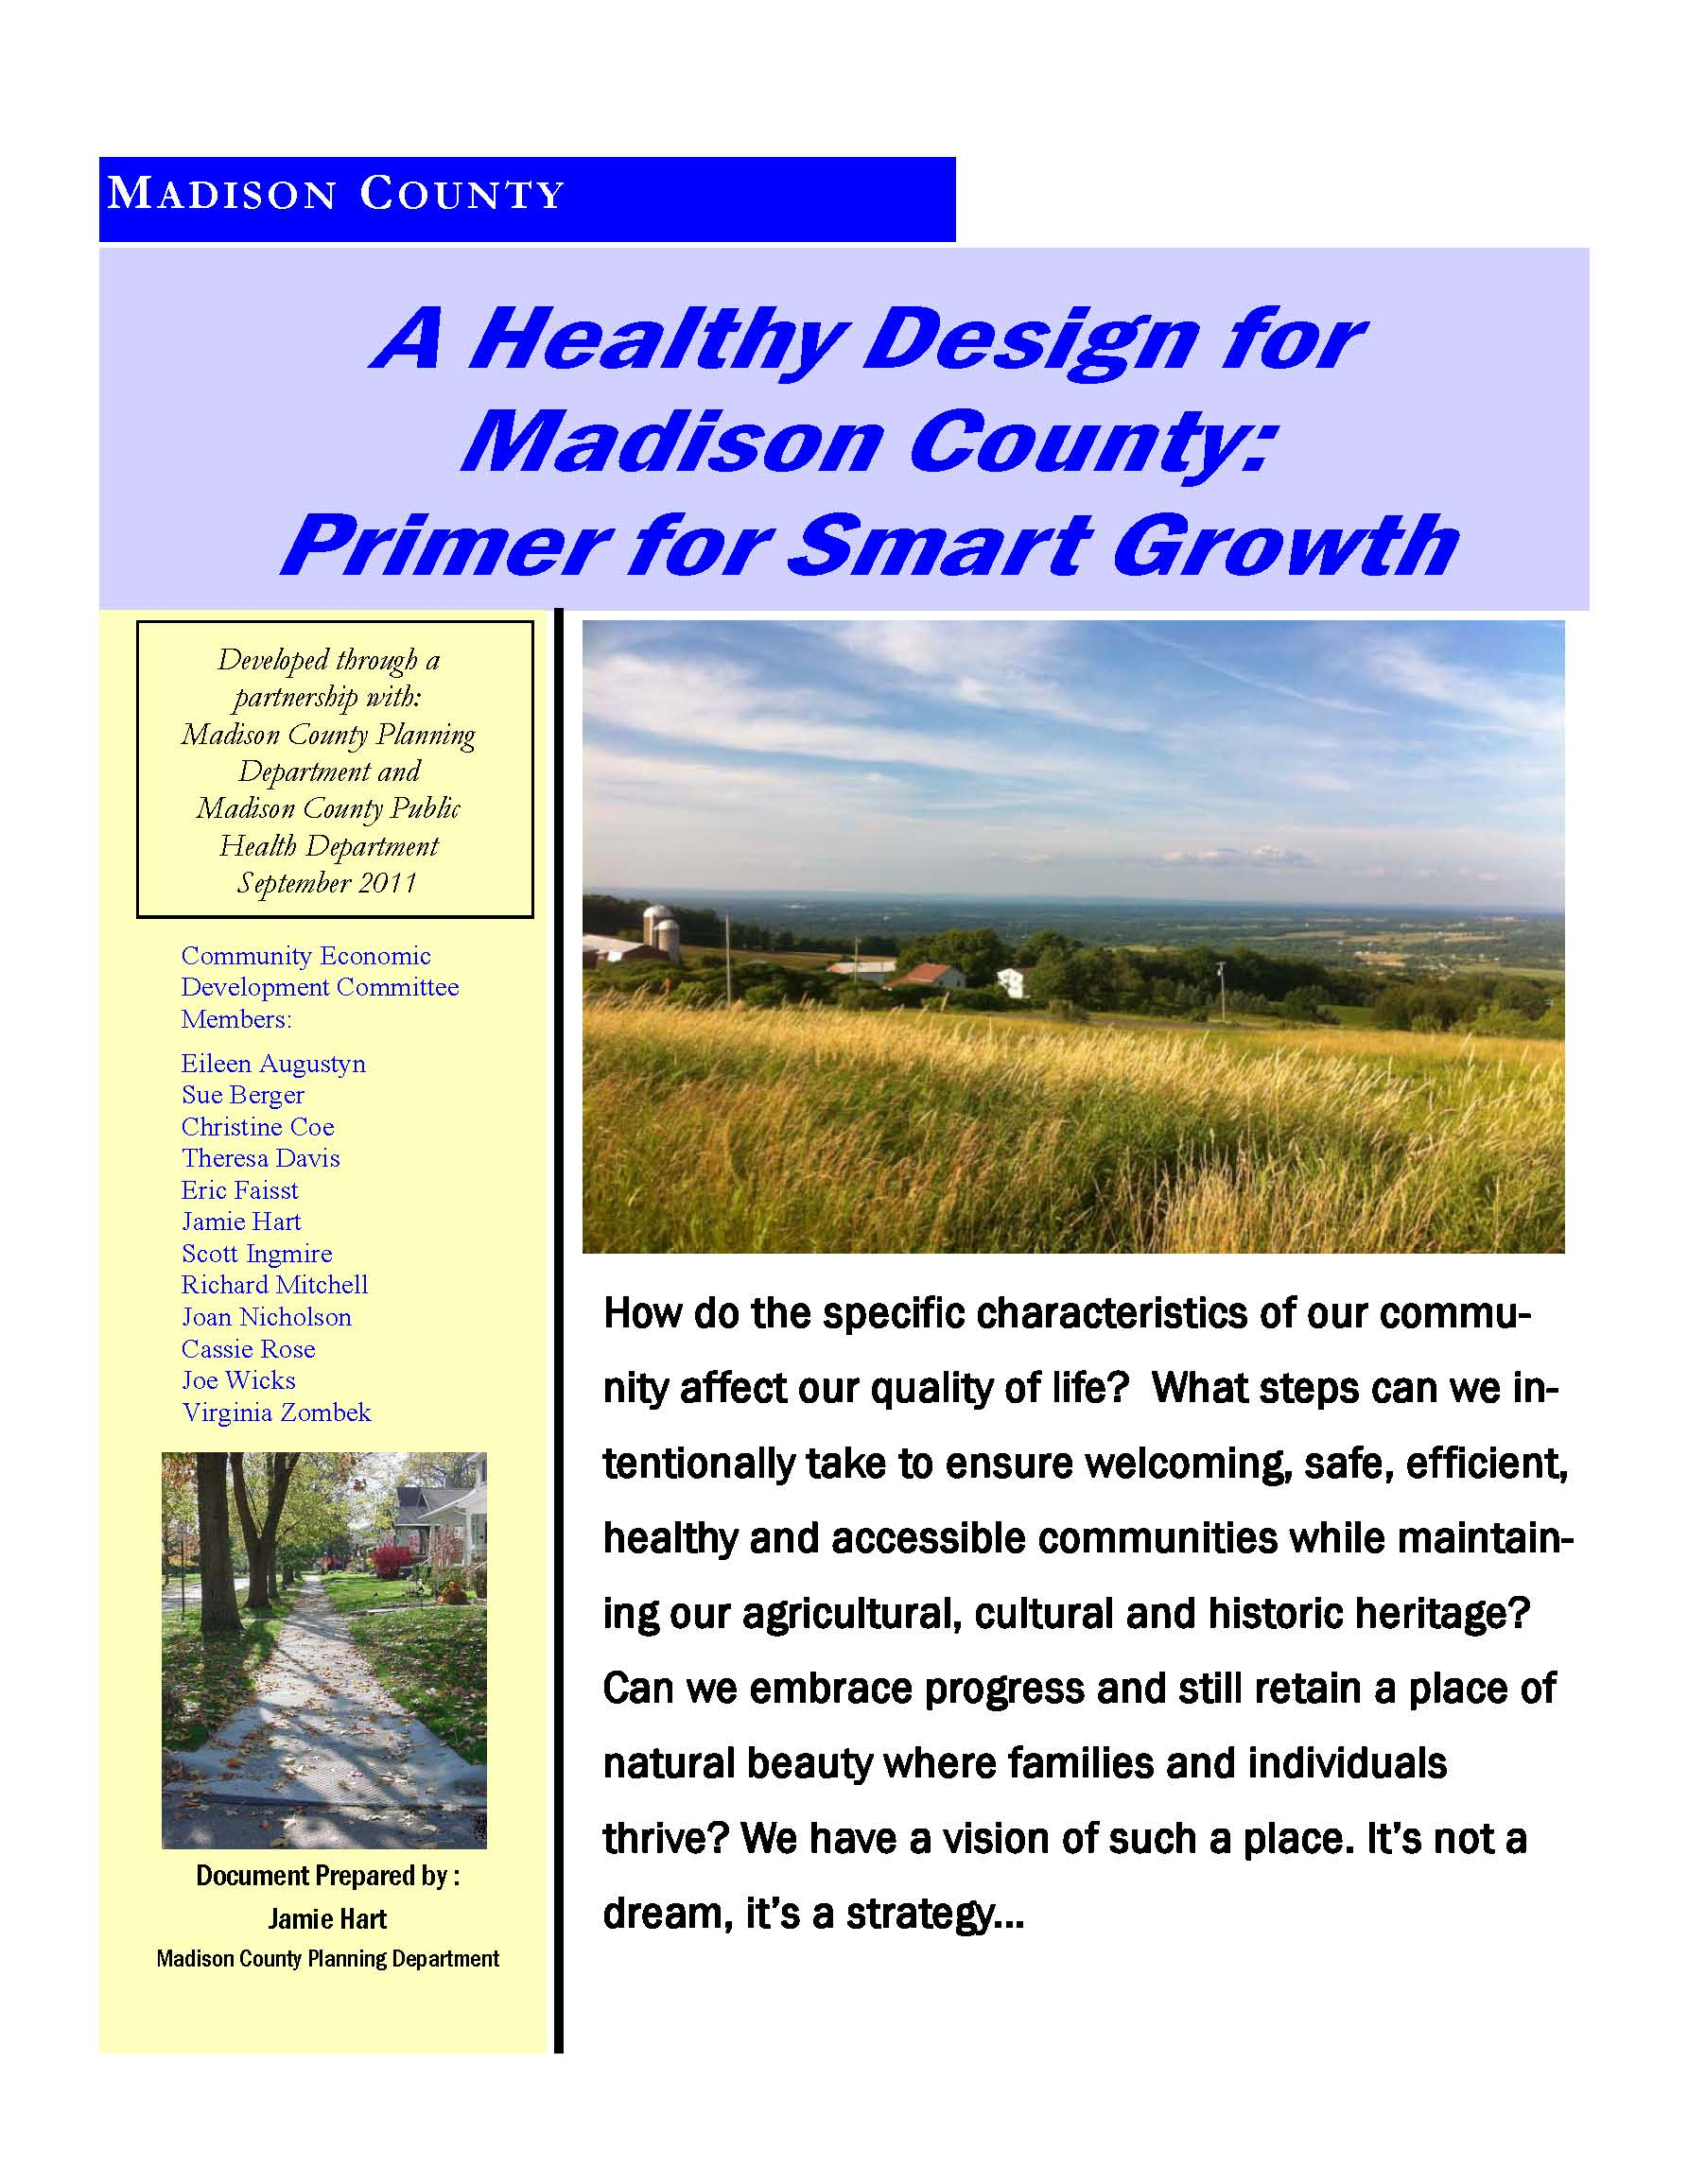 A Healthy Design for Madison County Primer for Smart Growth cover